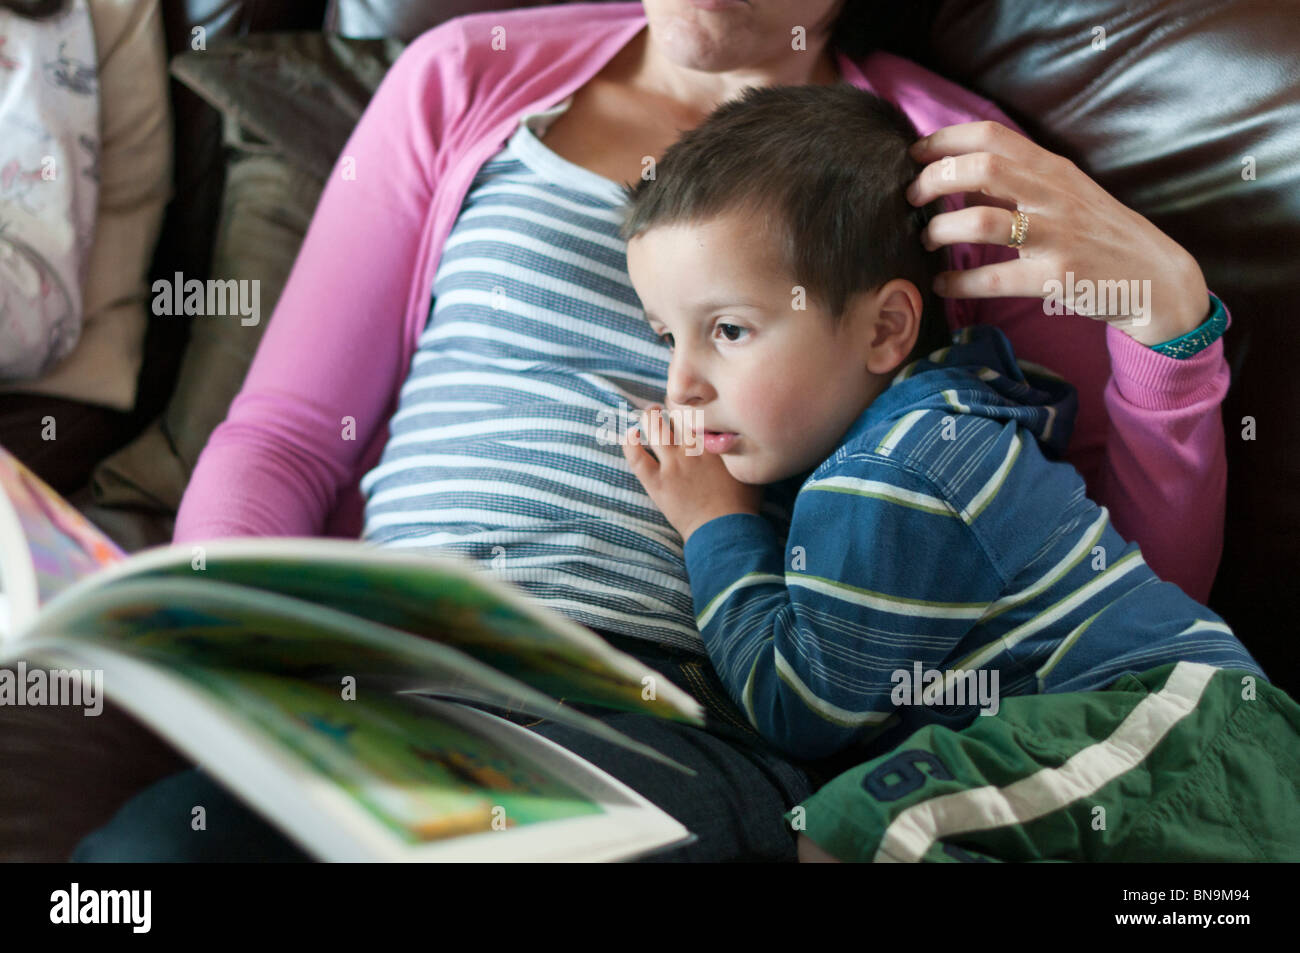 Mother reading bedtime stories to child - Stock Image